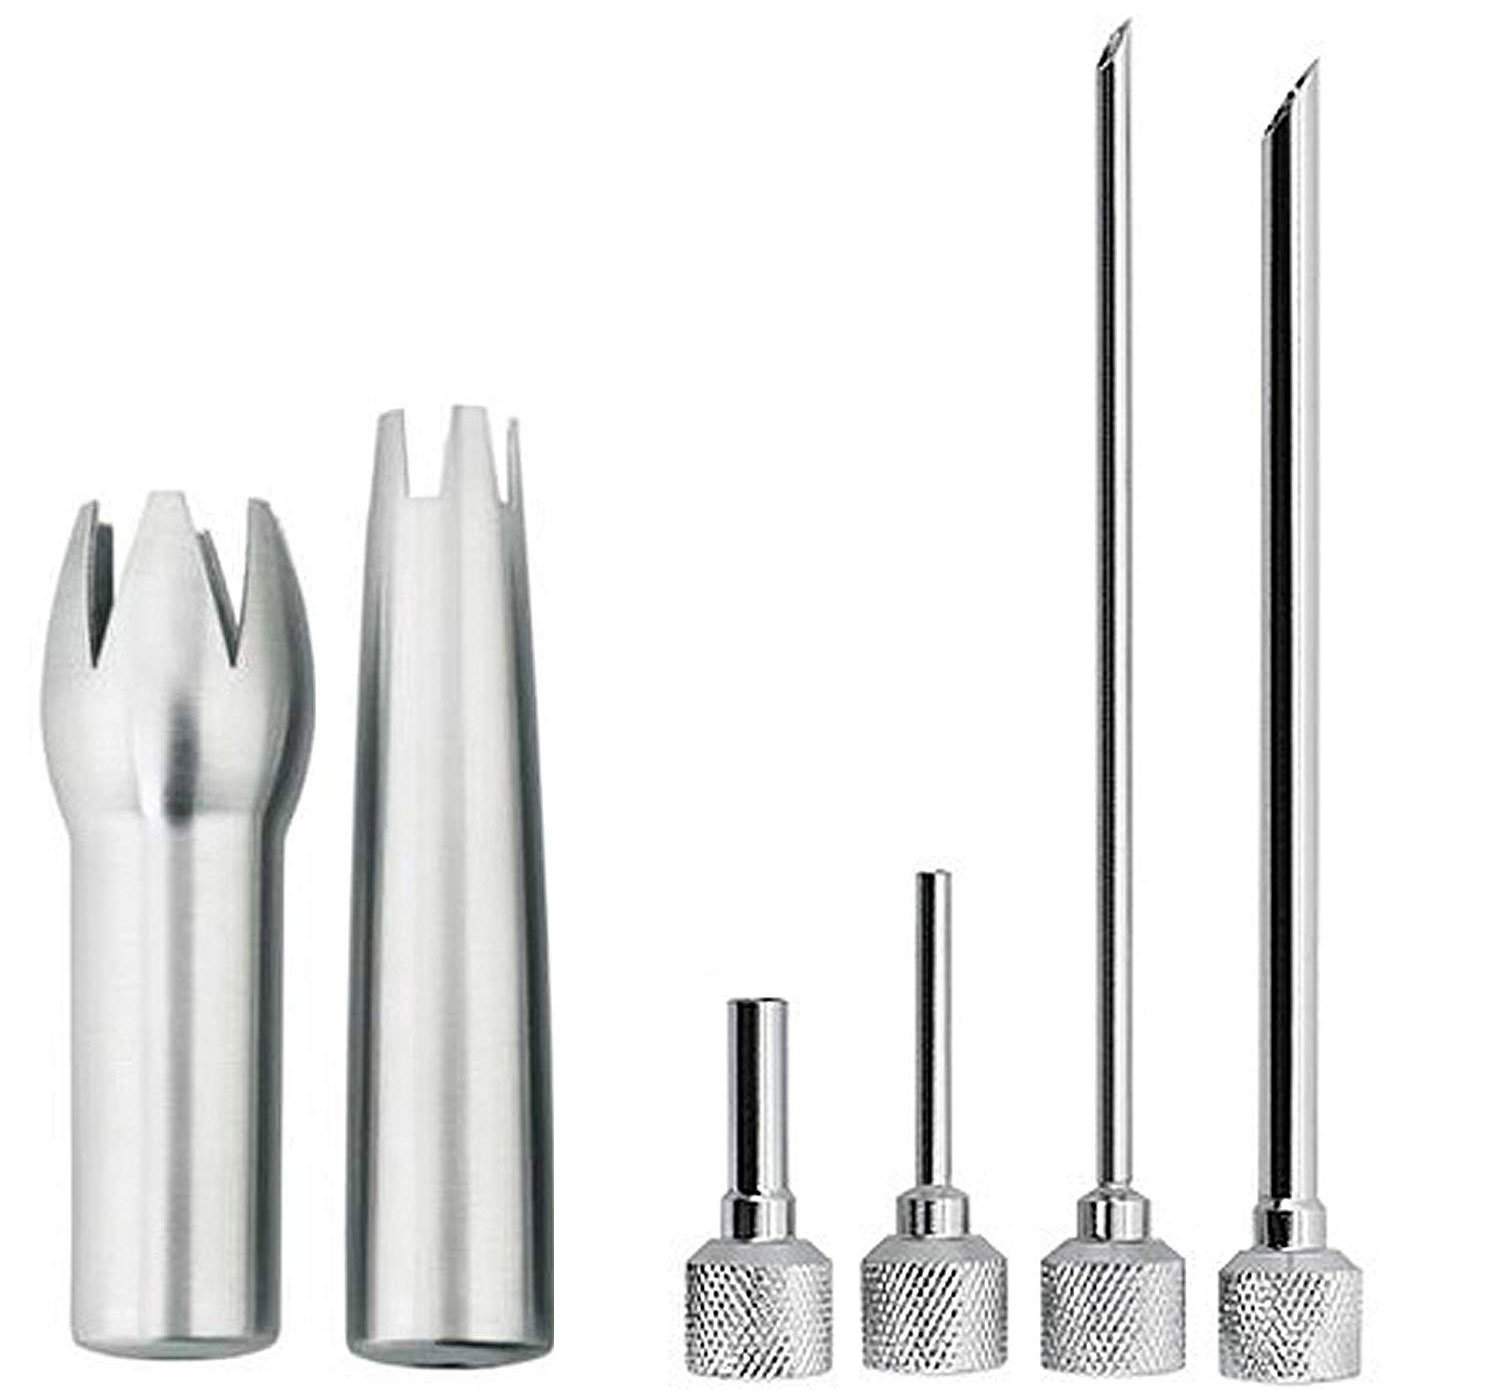 iSi Stainless Steel Decorating and Injector Tips Set